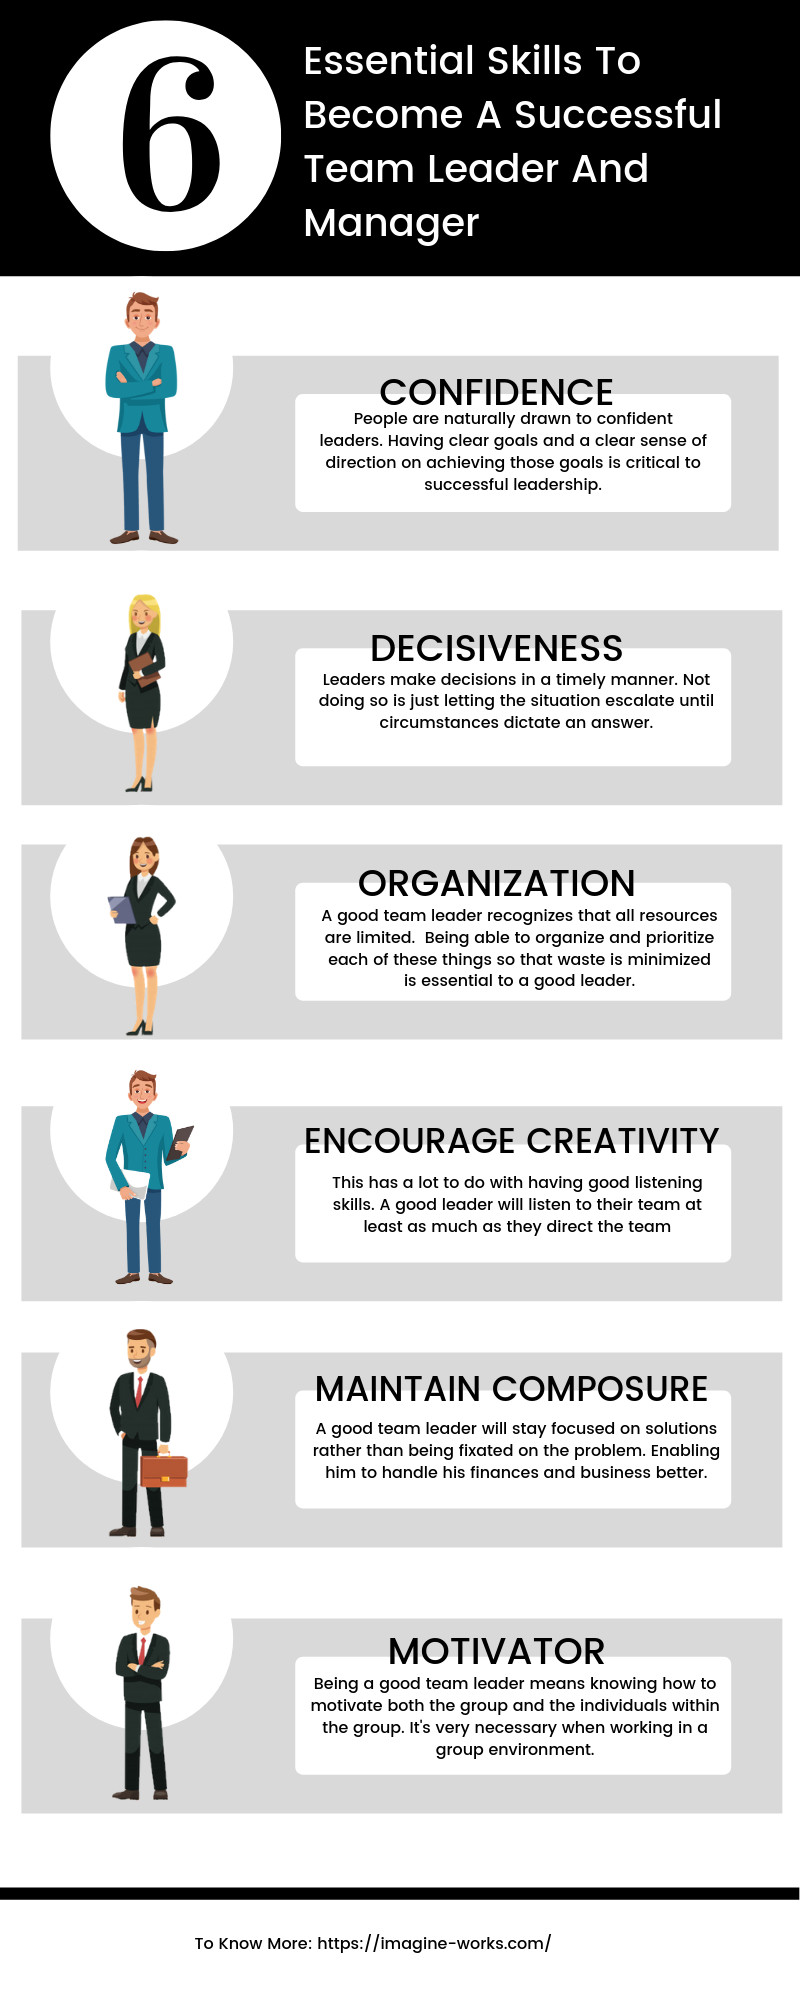 Essential Skills to become a successful Team Leader and Manager